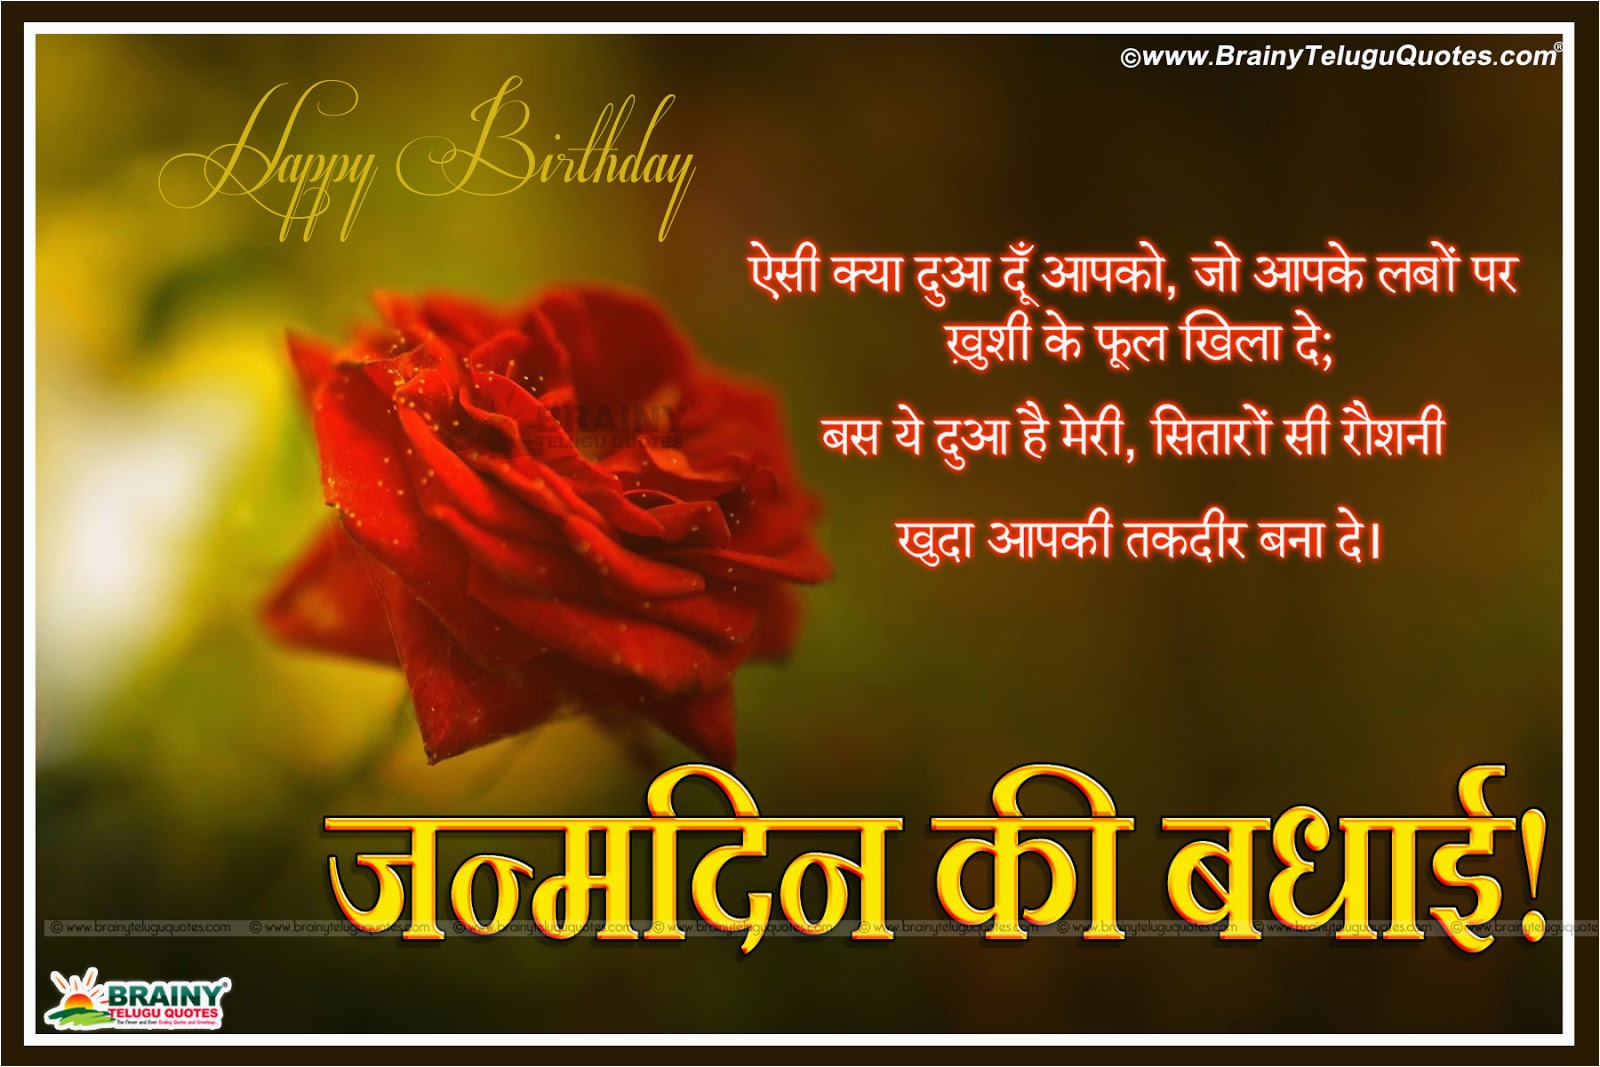 hindi birthday greetings wishes for friends lover family members